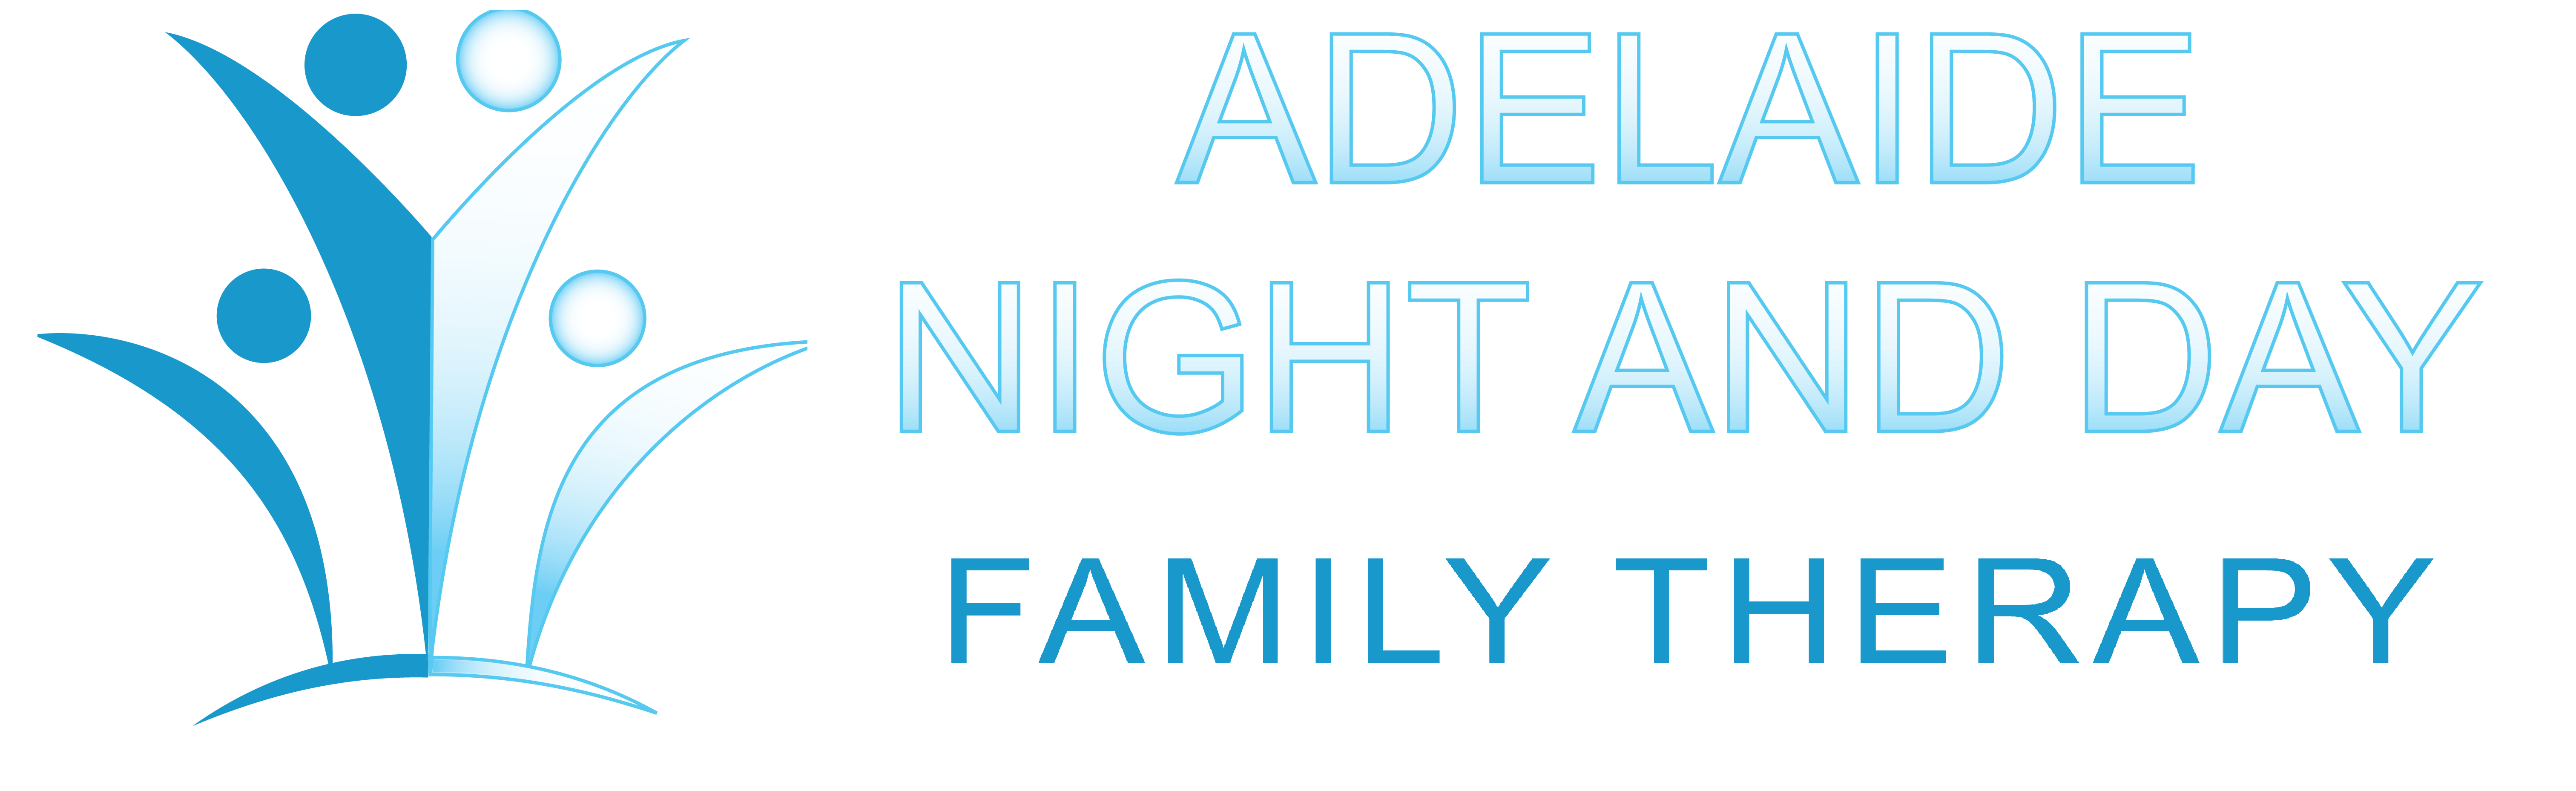 Adelaide Night and Day Family Therapy